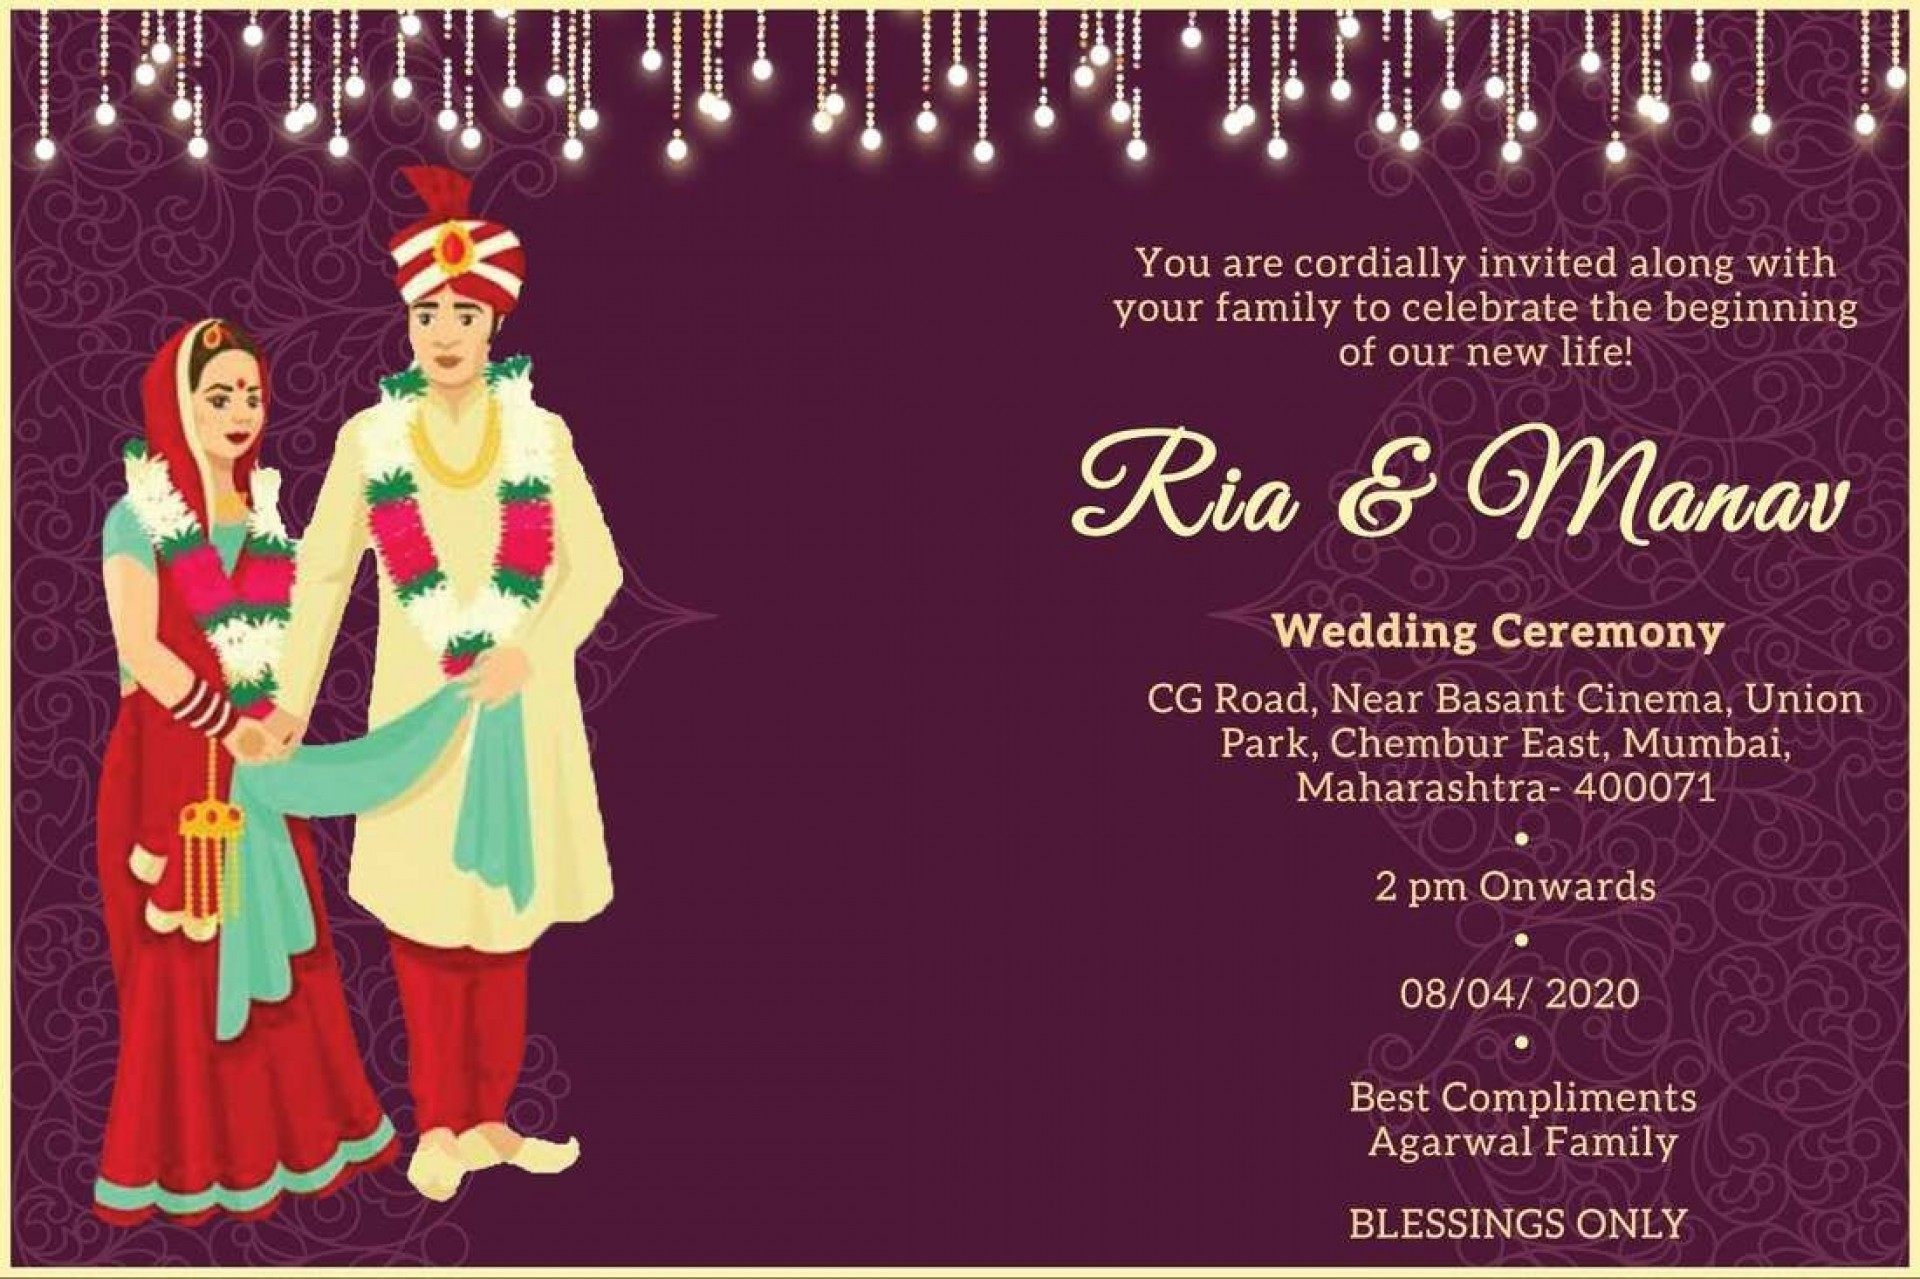 009 Excellent Free Online Indian Invitation Template Photo  Templates Engagement Card Maker Wedding1920